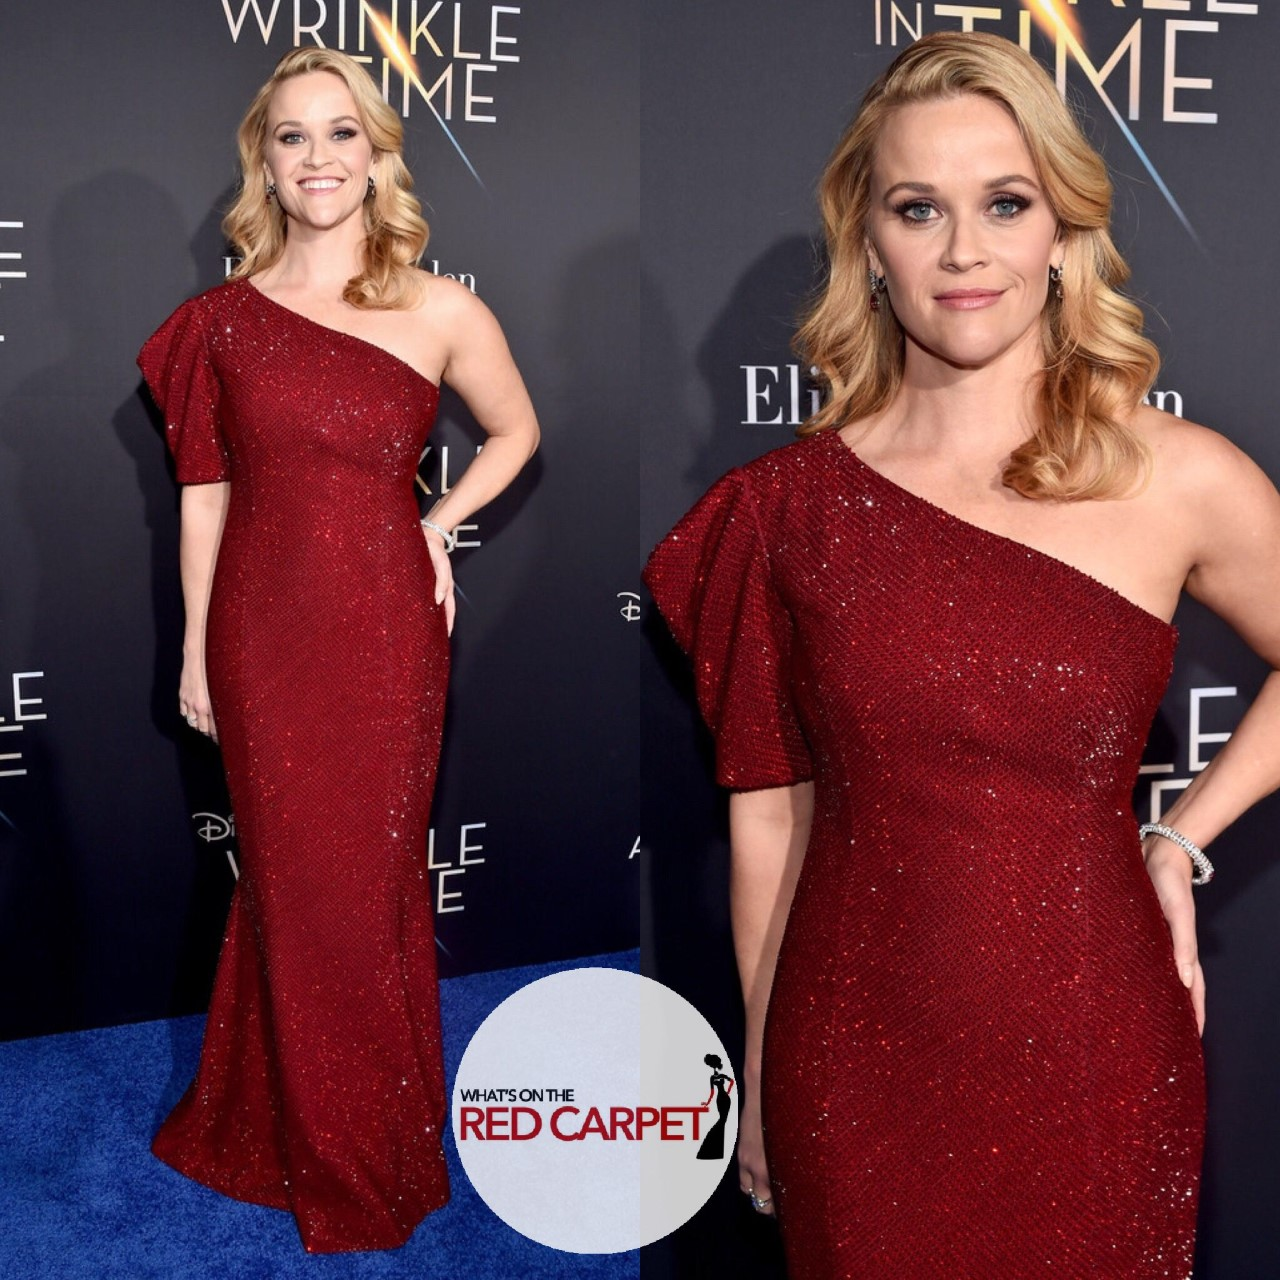 Reese Witherspoon Micheal kors a wrinkle in time Los Angeles premiere fashion style